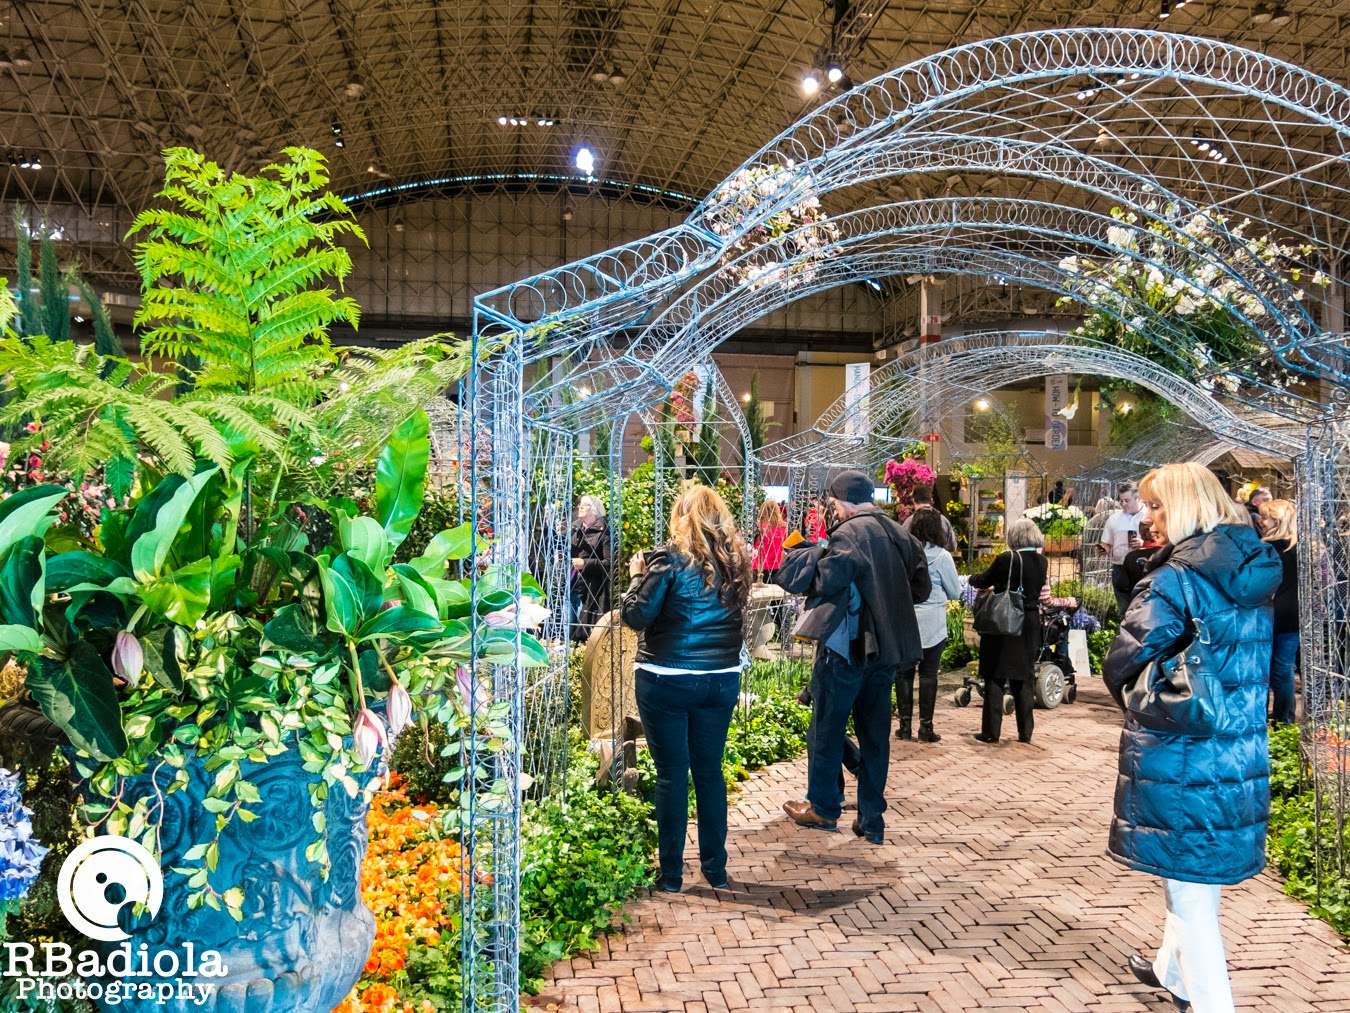 Me and my aperture The 2014 Chicago Flower and Garden Show